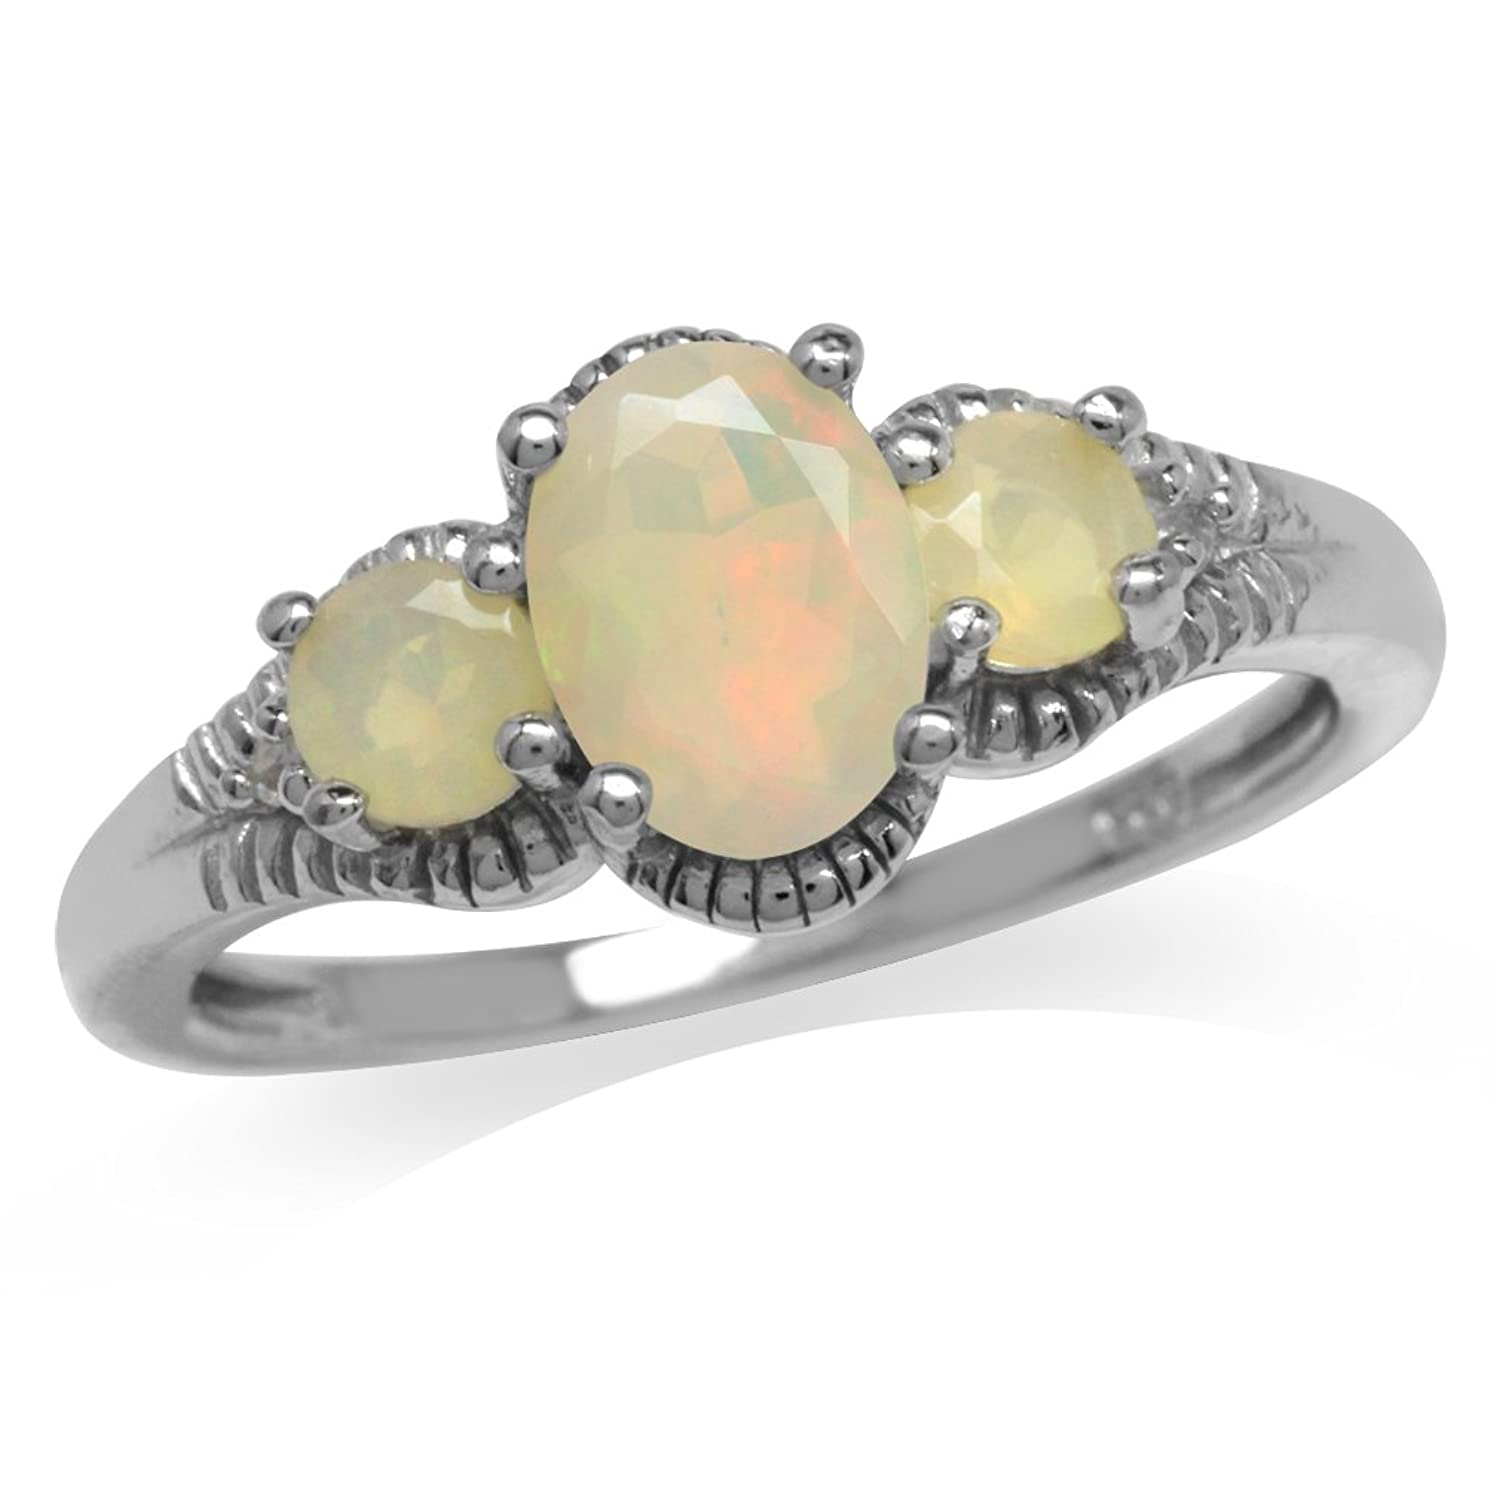 3-Stone Genuine Opal & White Topaz Gold Plated 925 Sterling Silver Ring